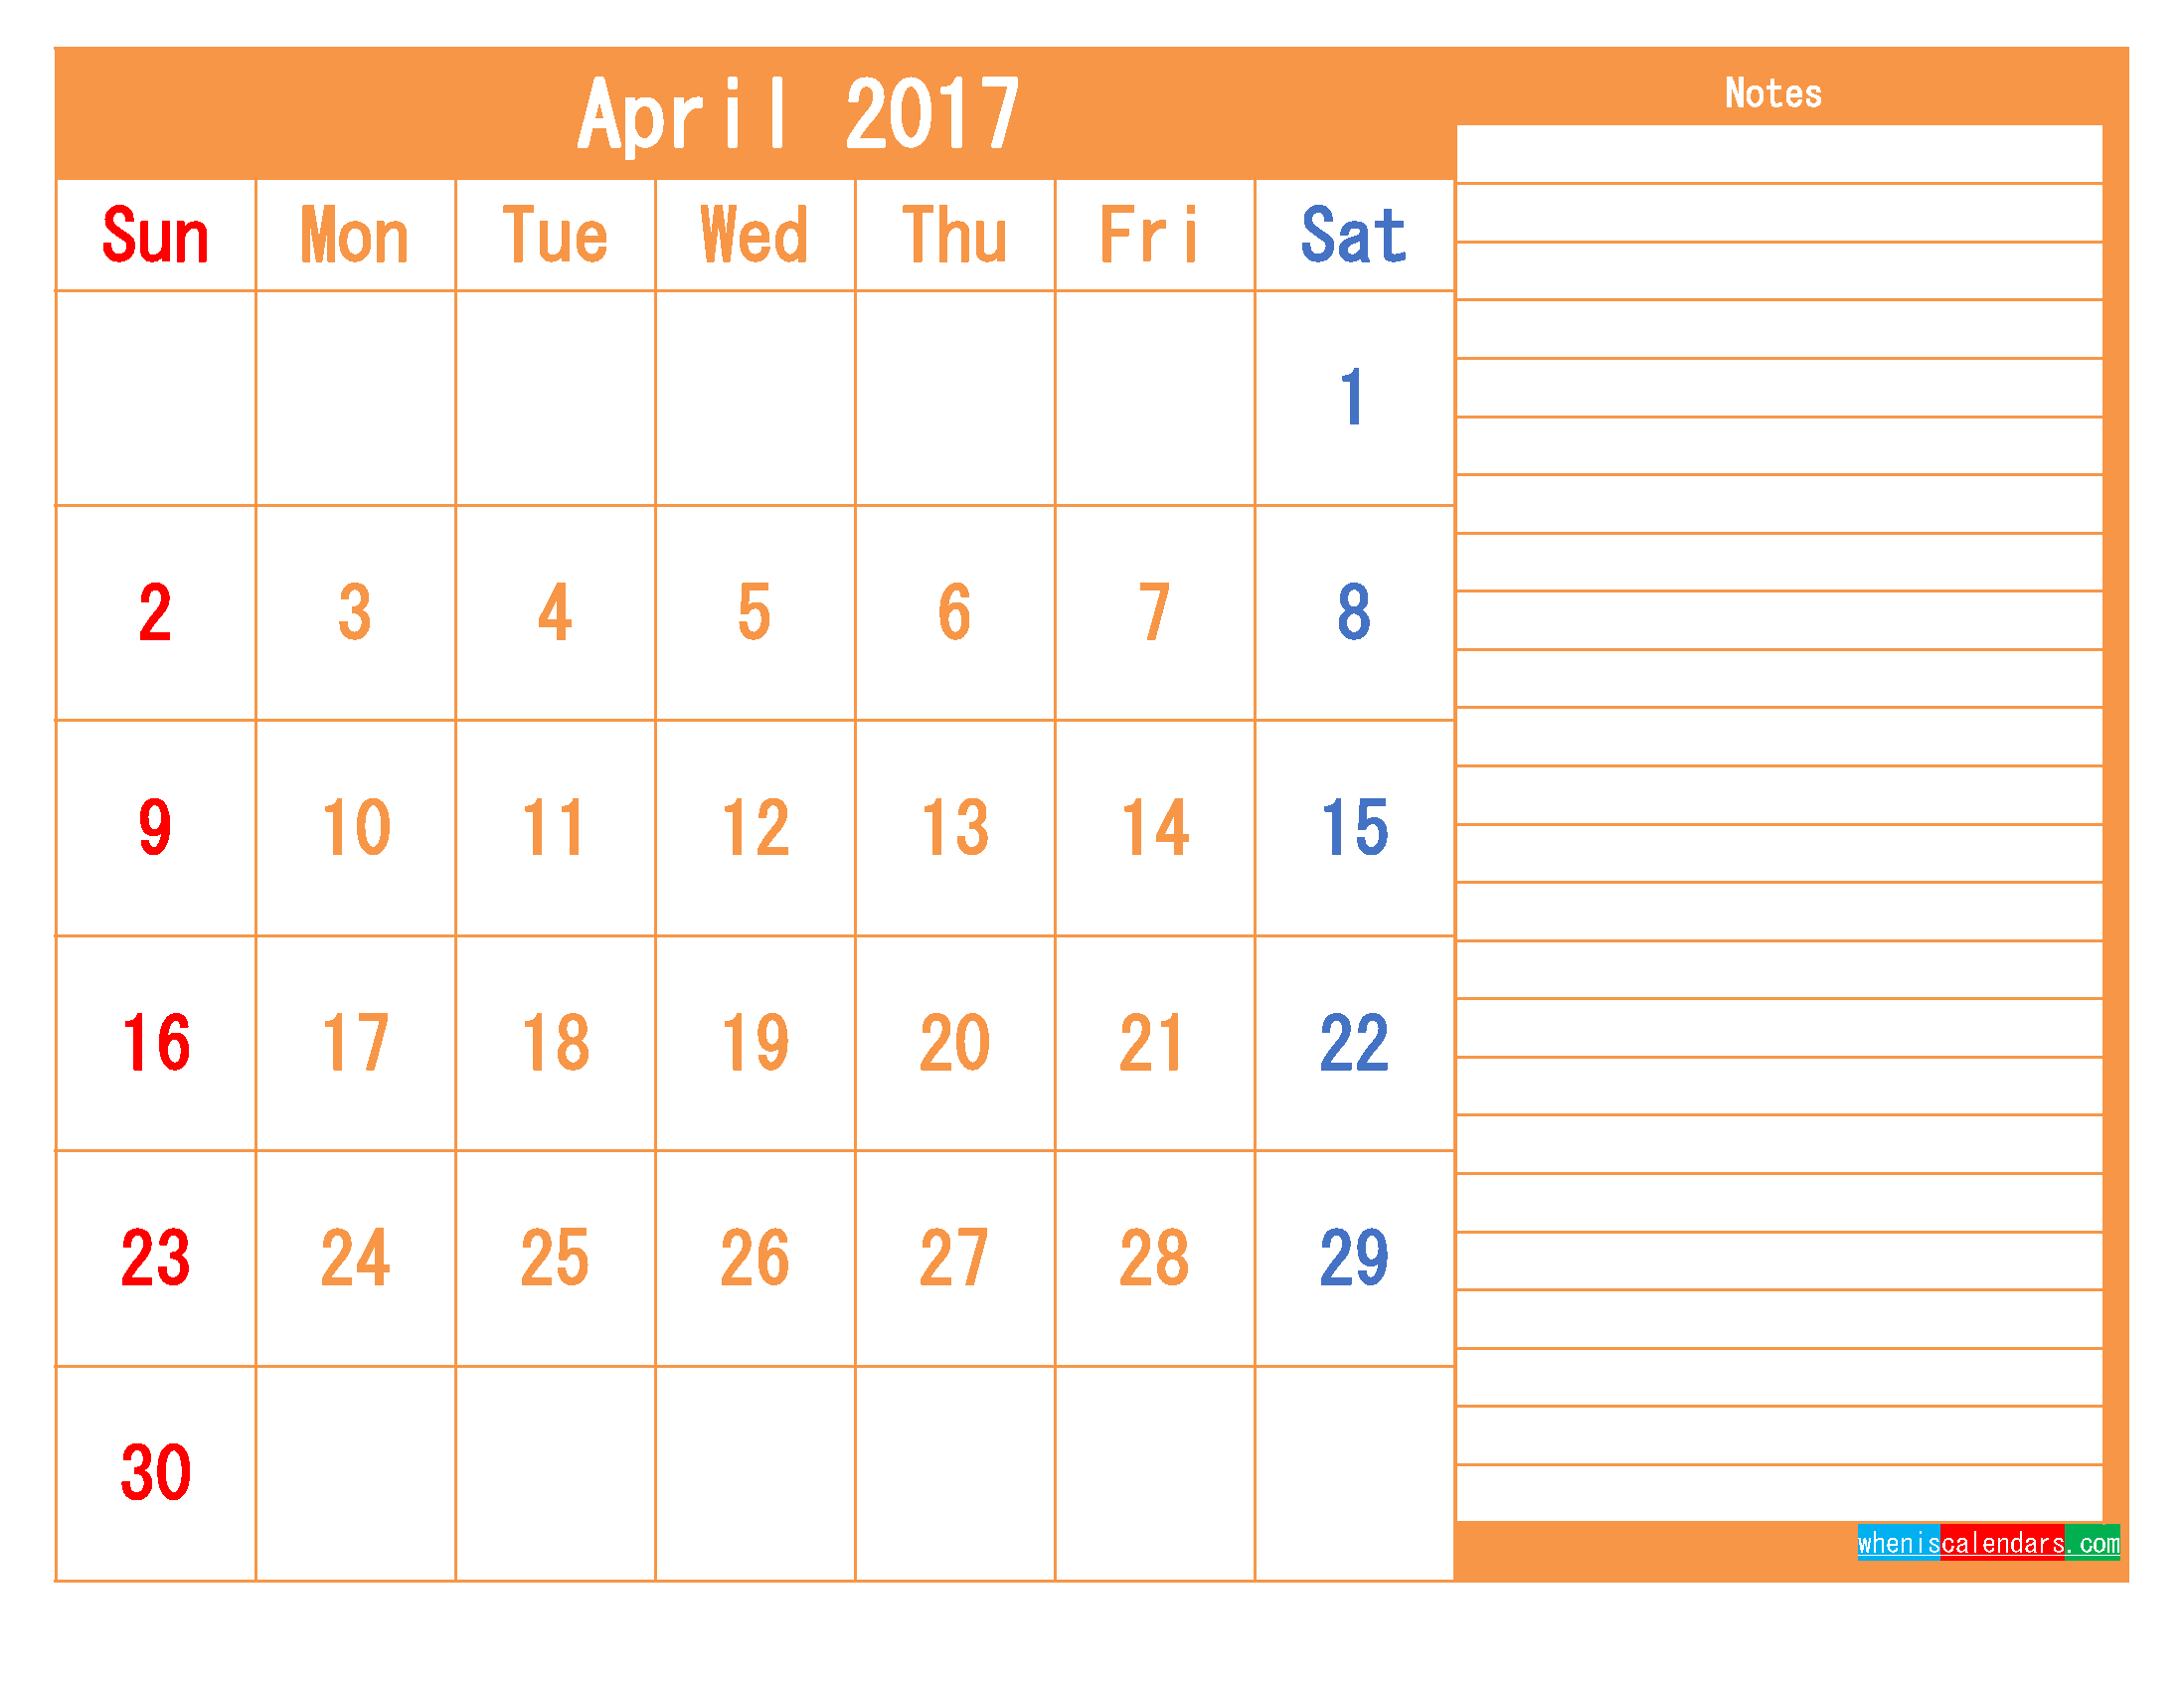 Free Printable Calendar 2017 April PDF and Image